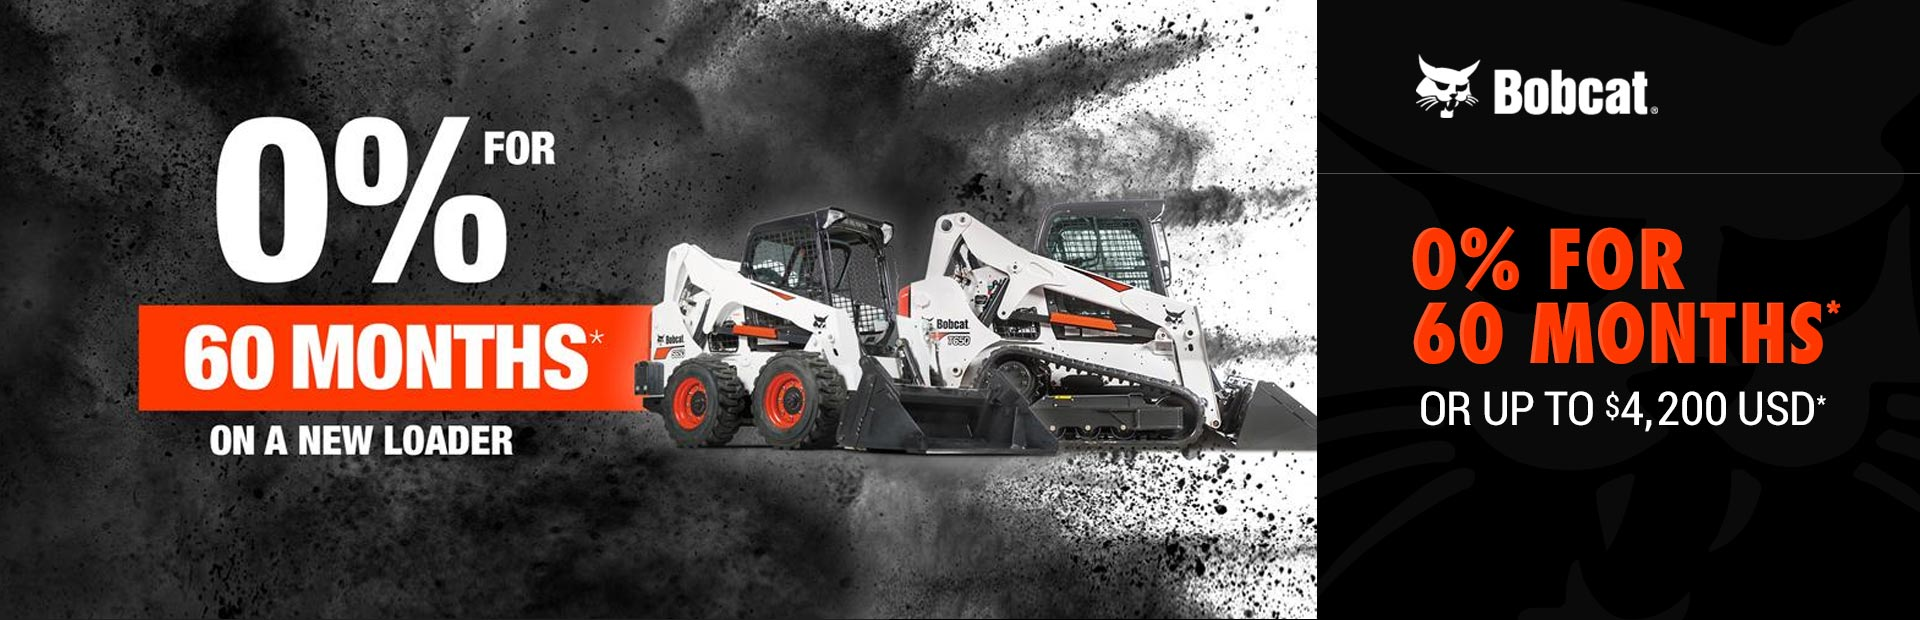 Bobcat: 0% for 60 Months* Or Up to $4,200 USD*